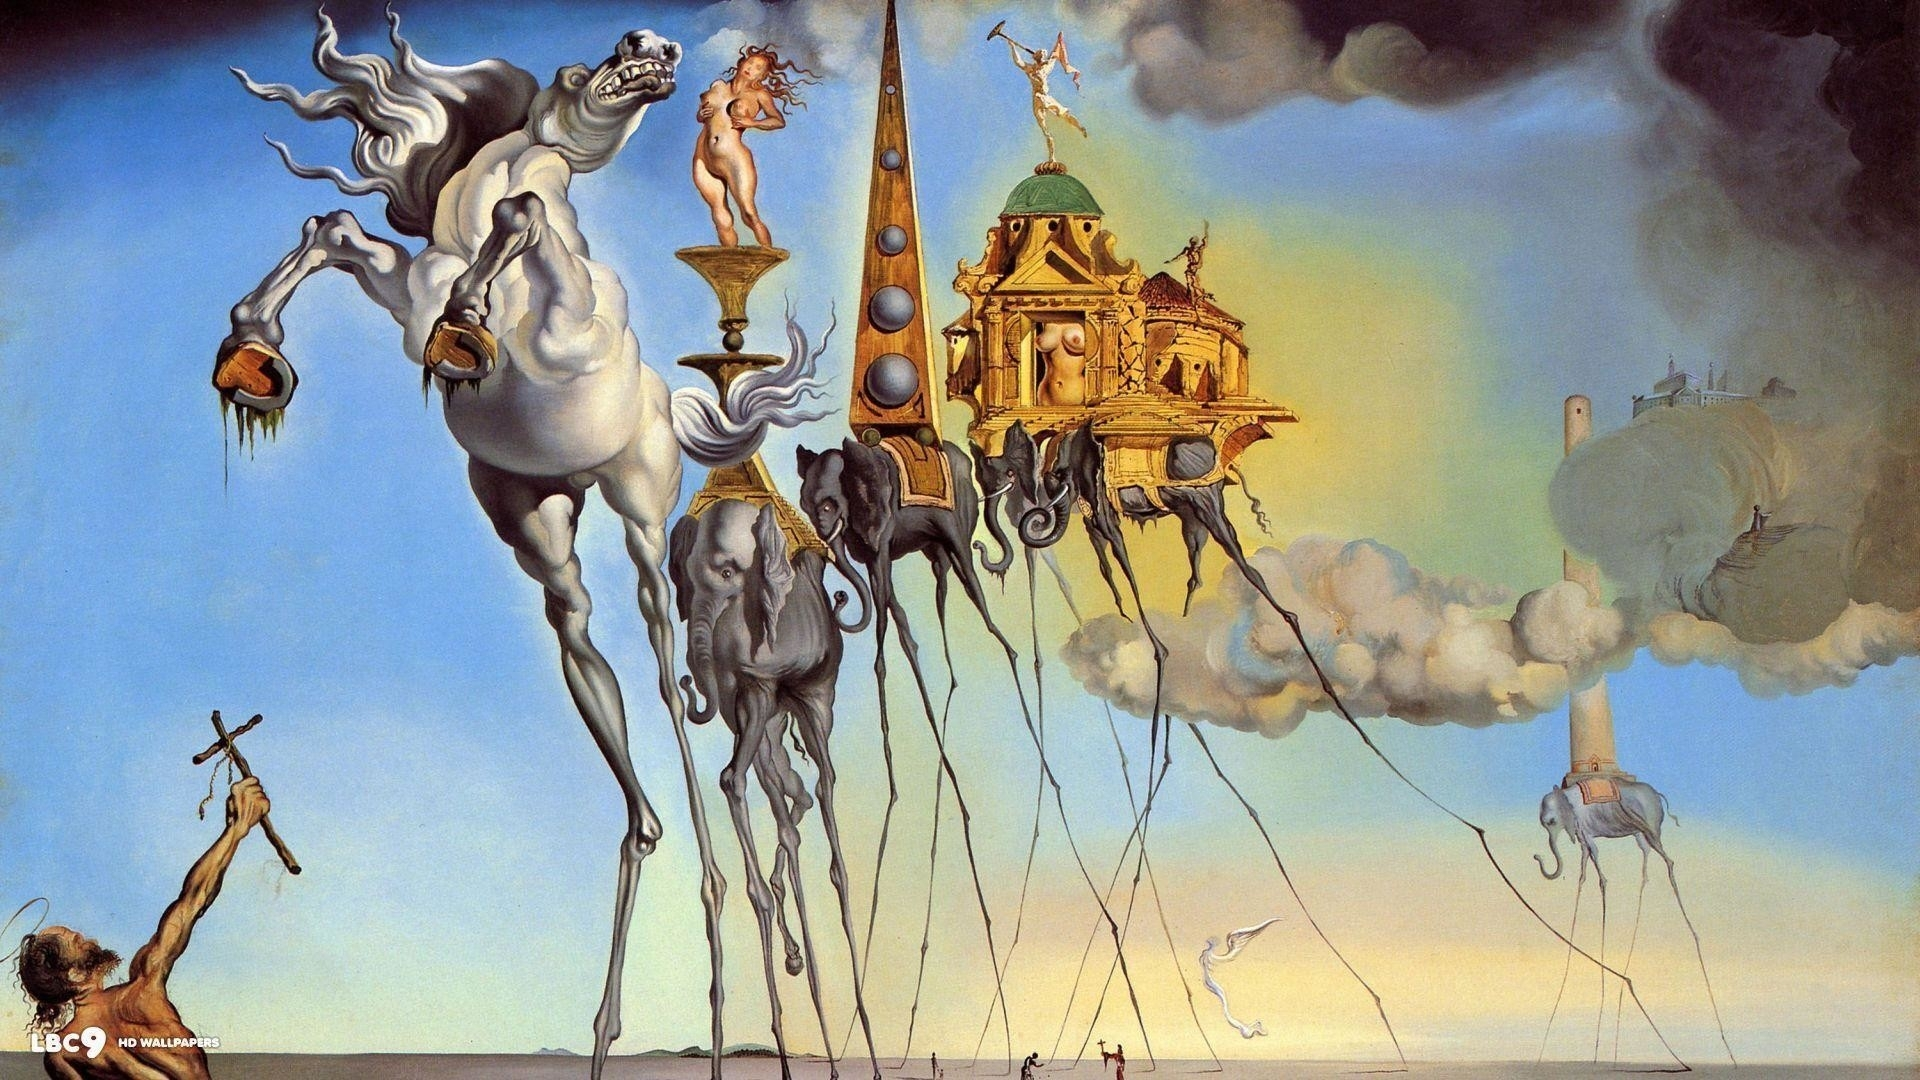 salvador dali wallpapers 1920x1080 (71+ images)